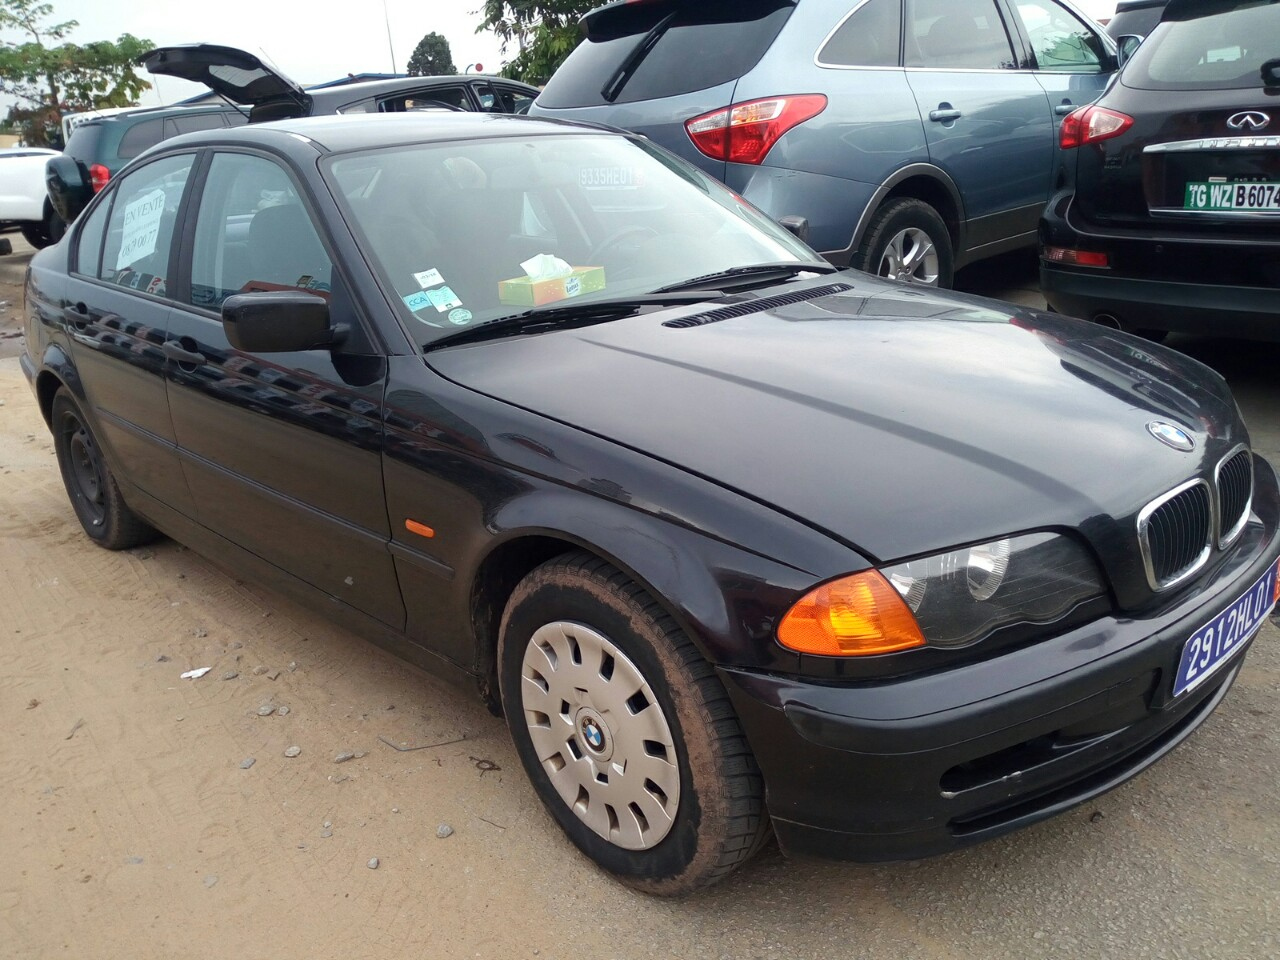 bmw s rie 3 manuelle 4 cylindres 300000 km a vendre co t 3 350 000 fcfa ttc. Black Bedroom Furniture Sets. Home Design Ideas